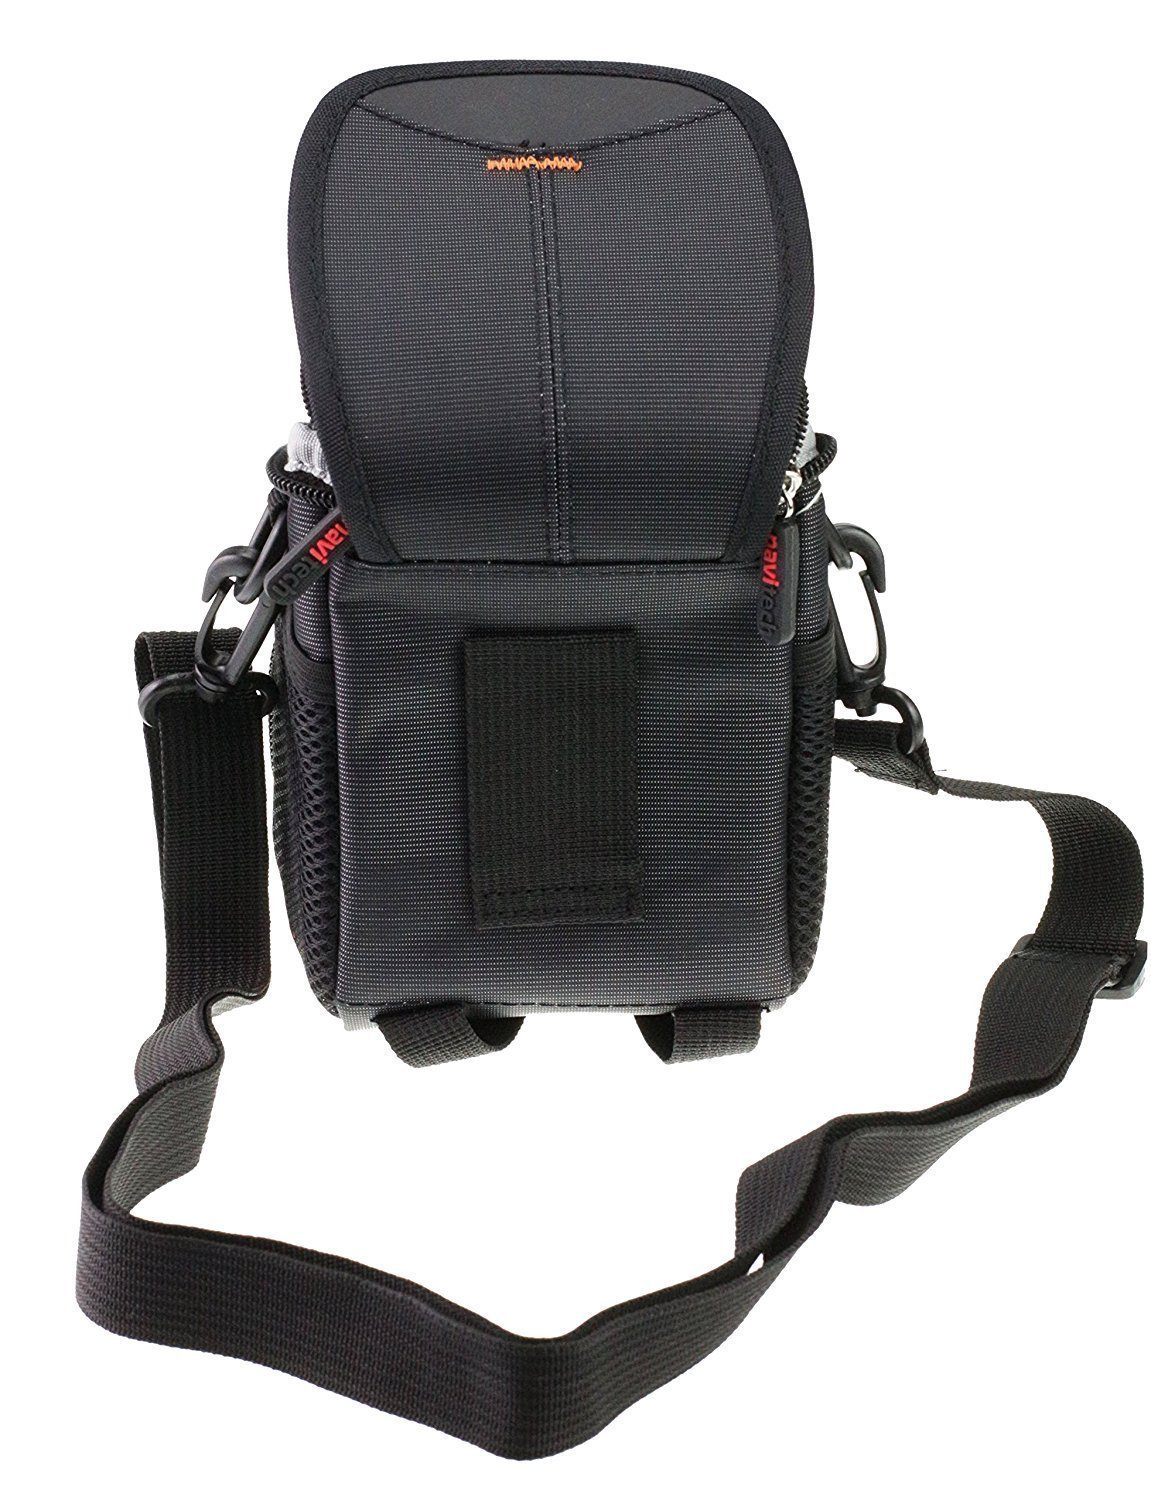 Navitech Black Camcorder Case Bag Cover Compatible With The/ Panasonic HC-V380